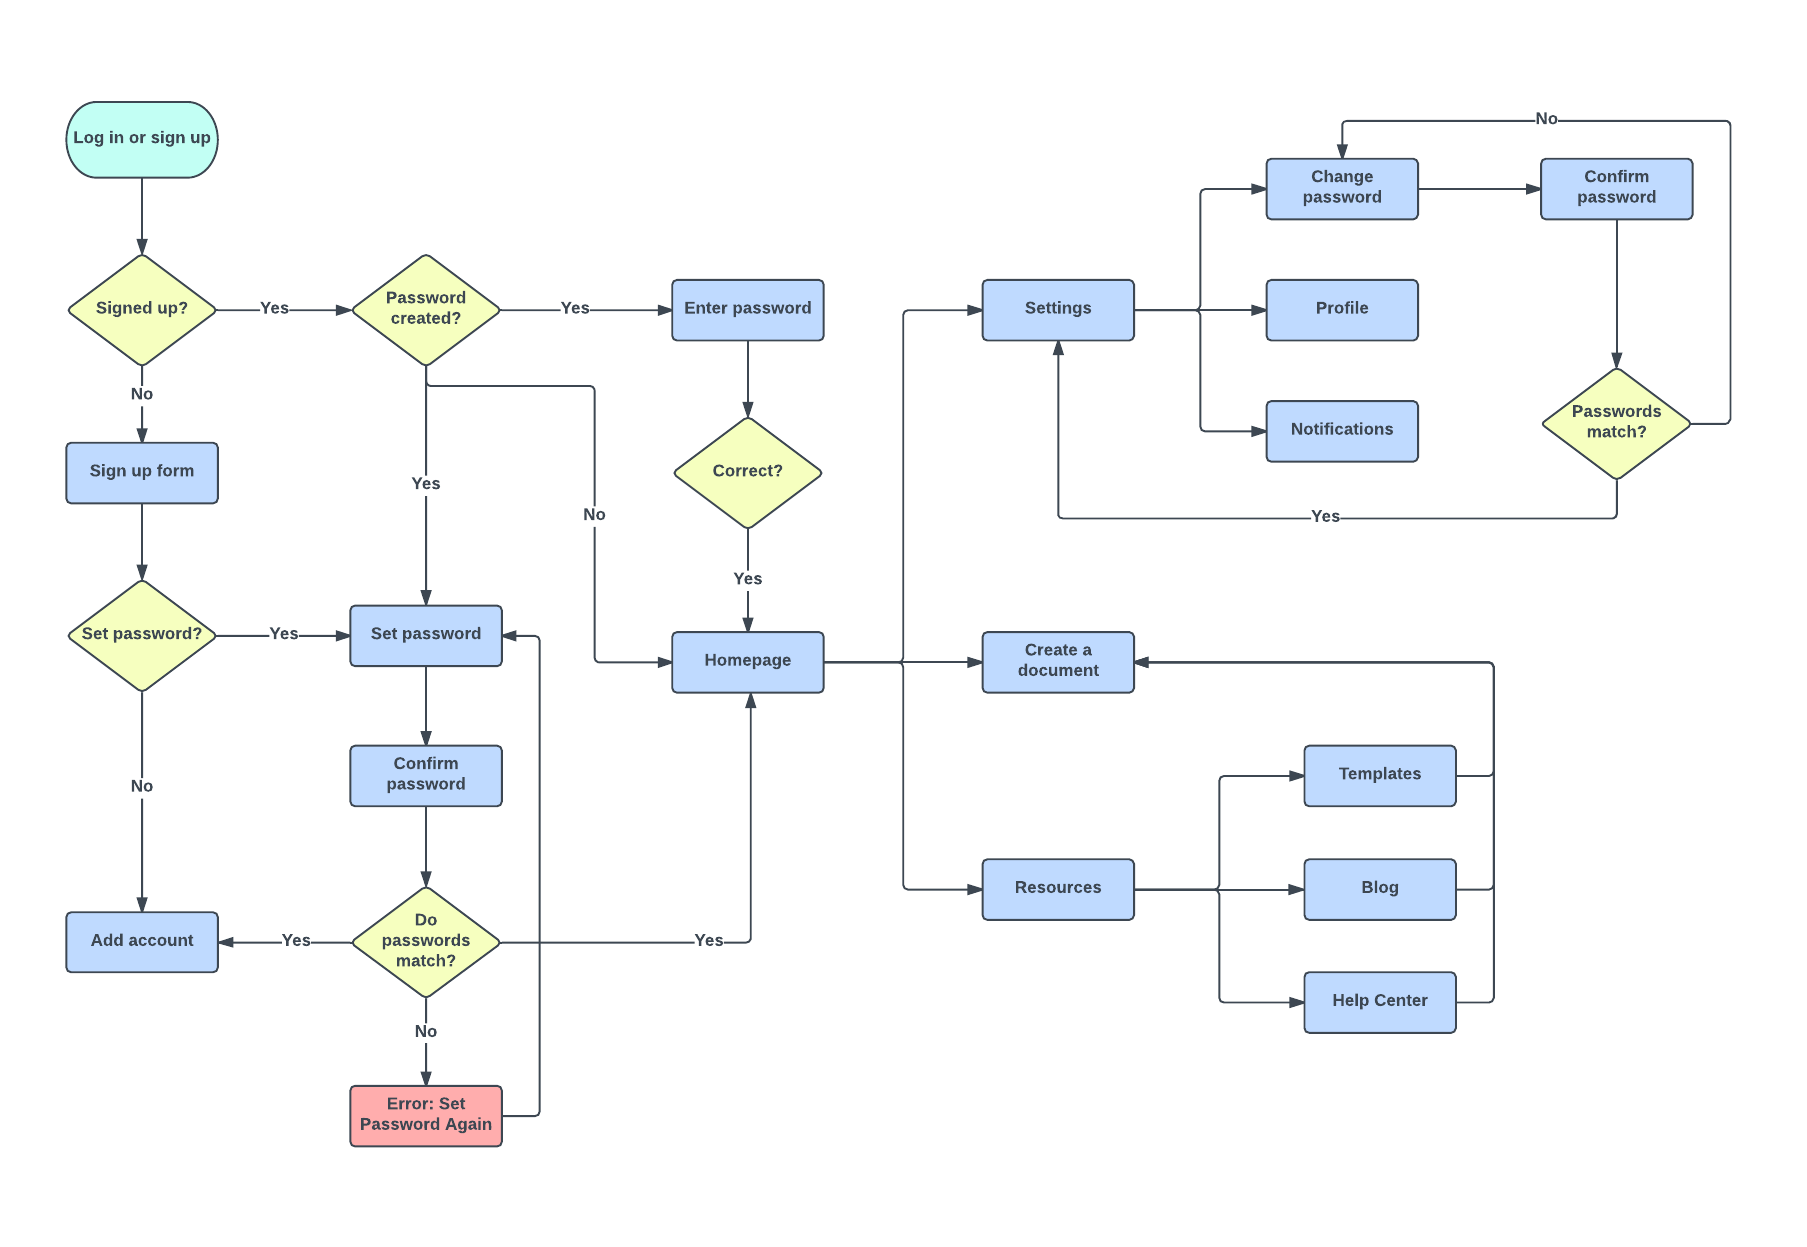 hight resolution of user journey flow template